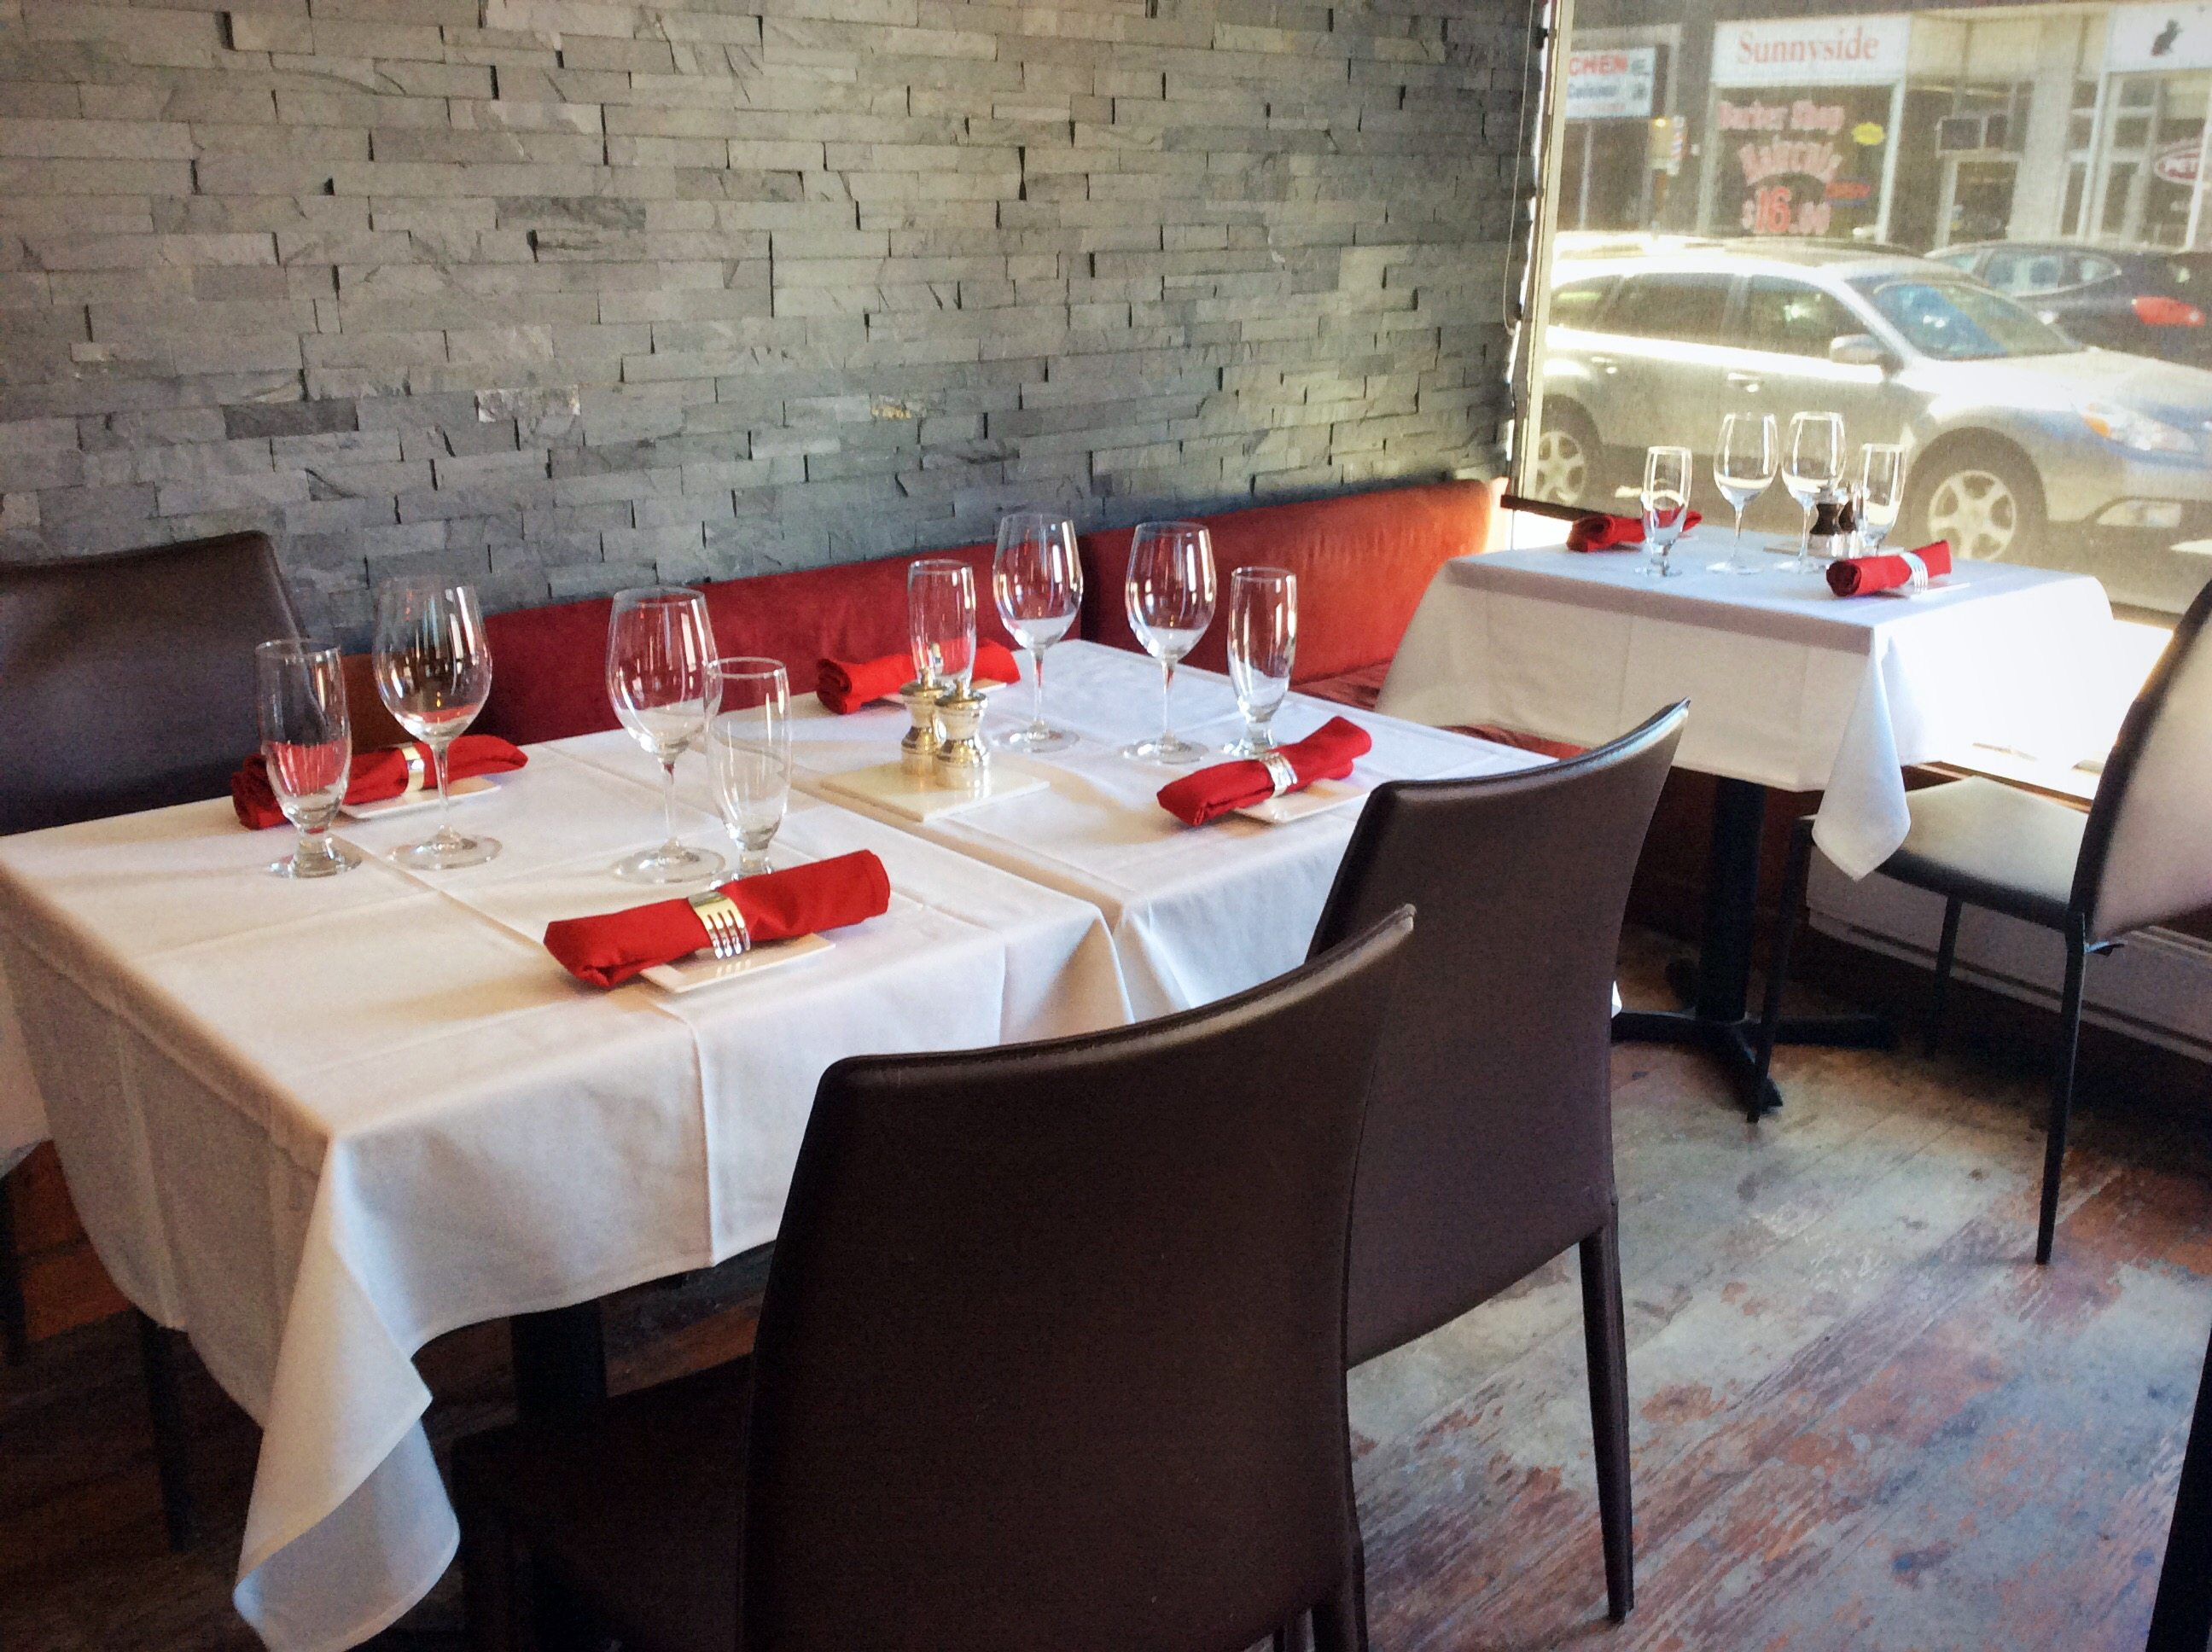 A quick refresh of the restaurant has made the space much brighter, with white, red, and grey as the dominant colours